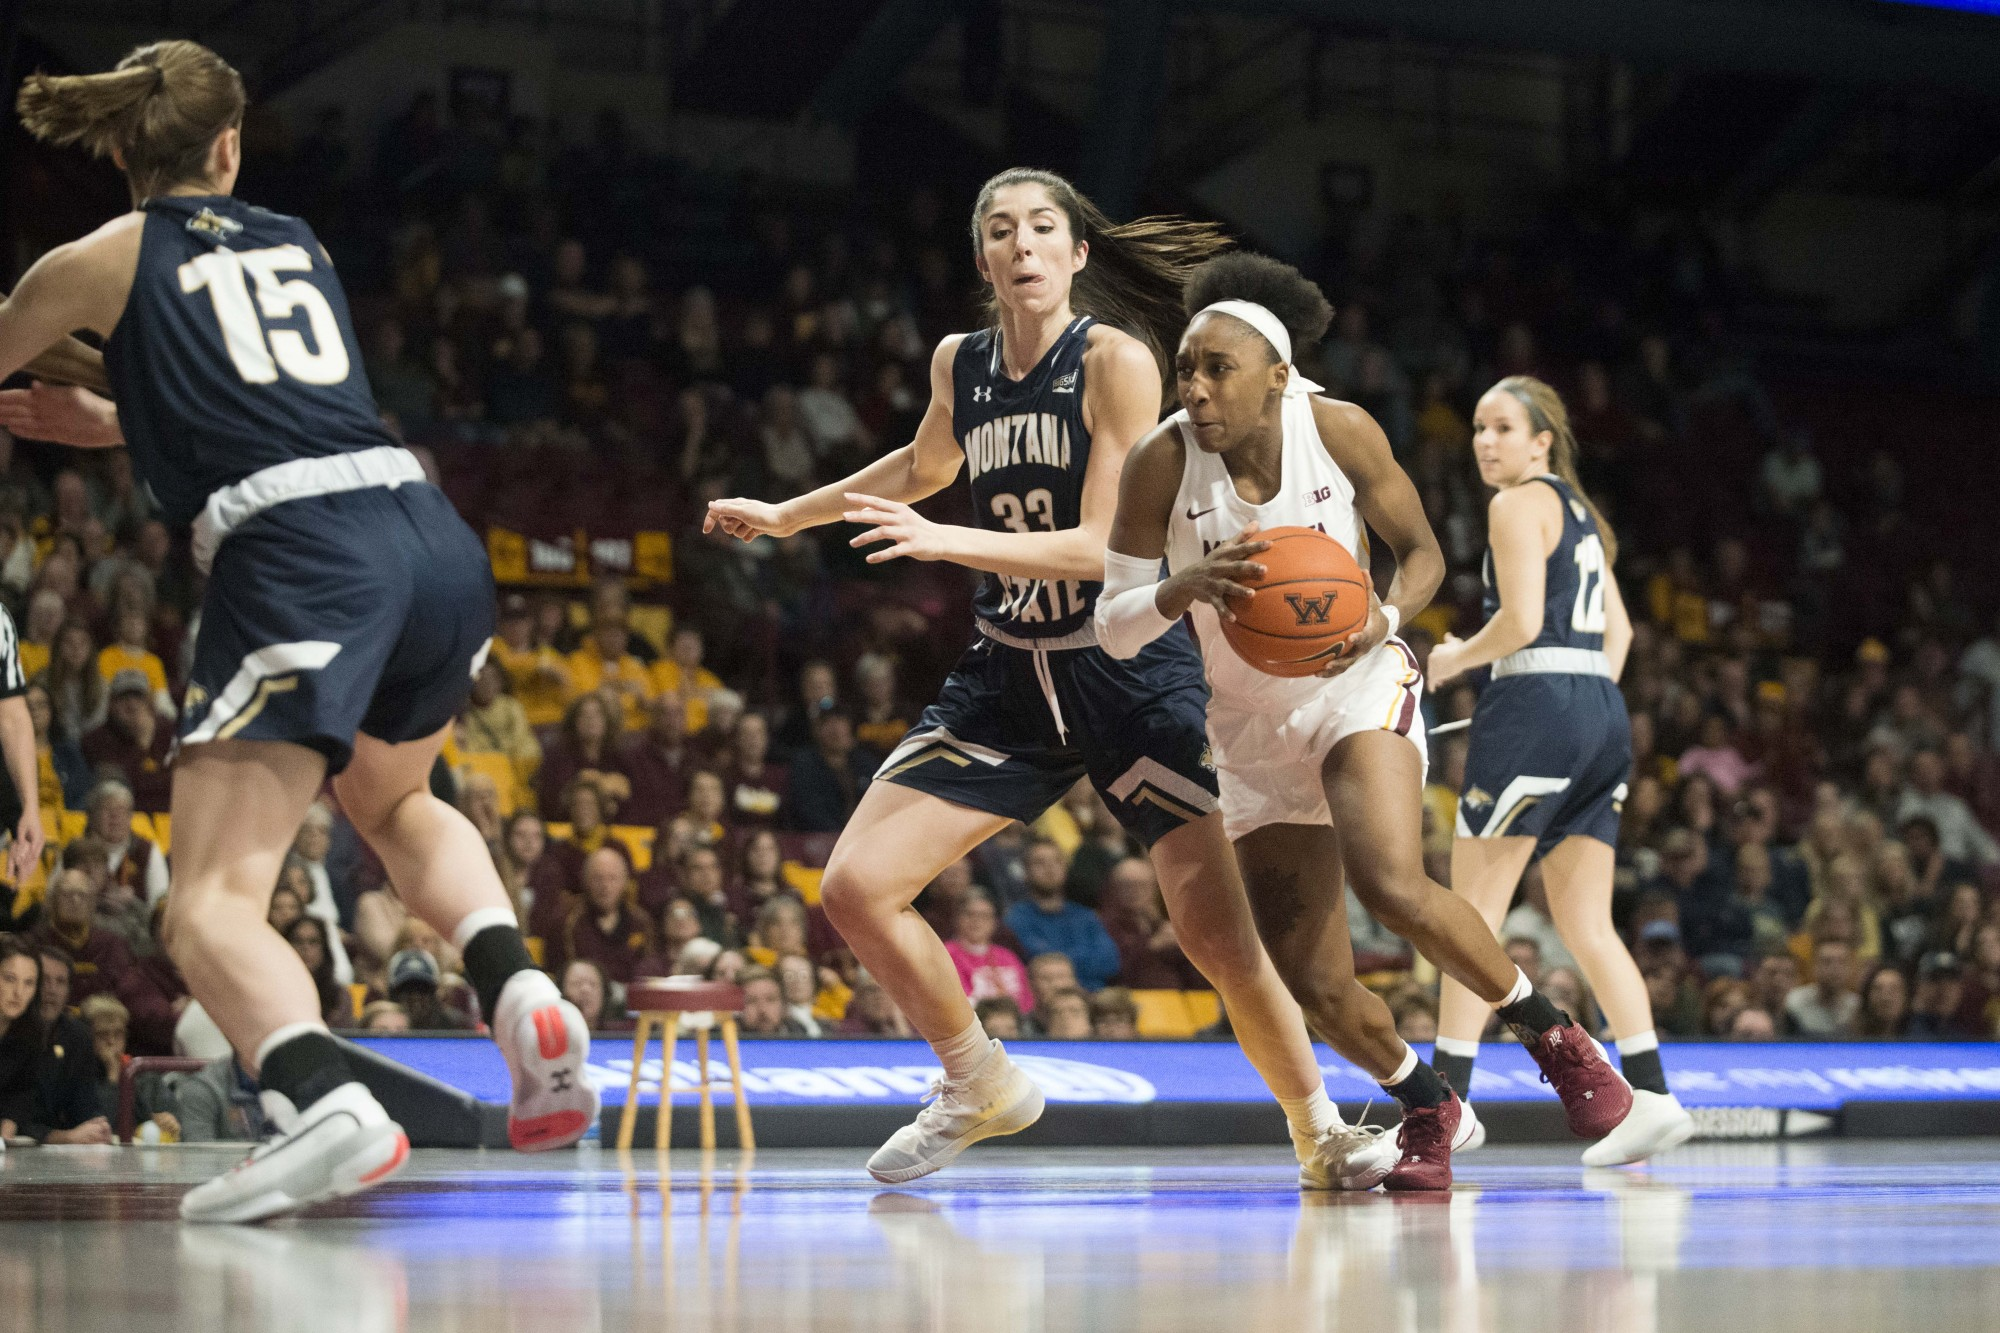 Guard Jasmine Brunson drives towards the hoop in Williams Arena on Saturday, Nov. 23. The Gophers went on to defeat Montana State 71-60. (Liam Armstrong / Minnesota Daily).